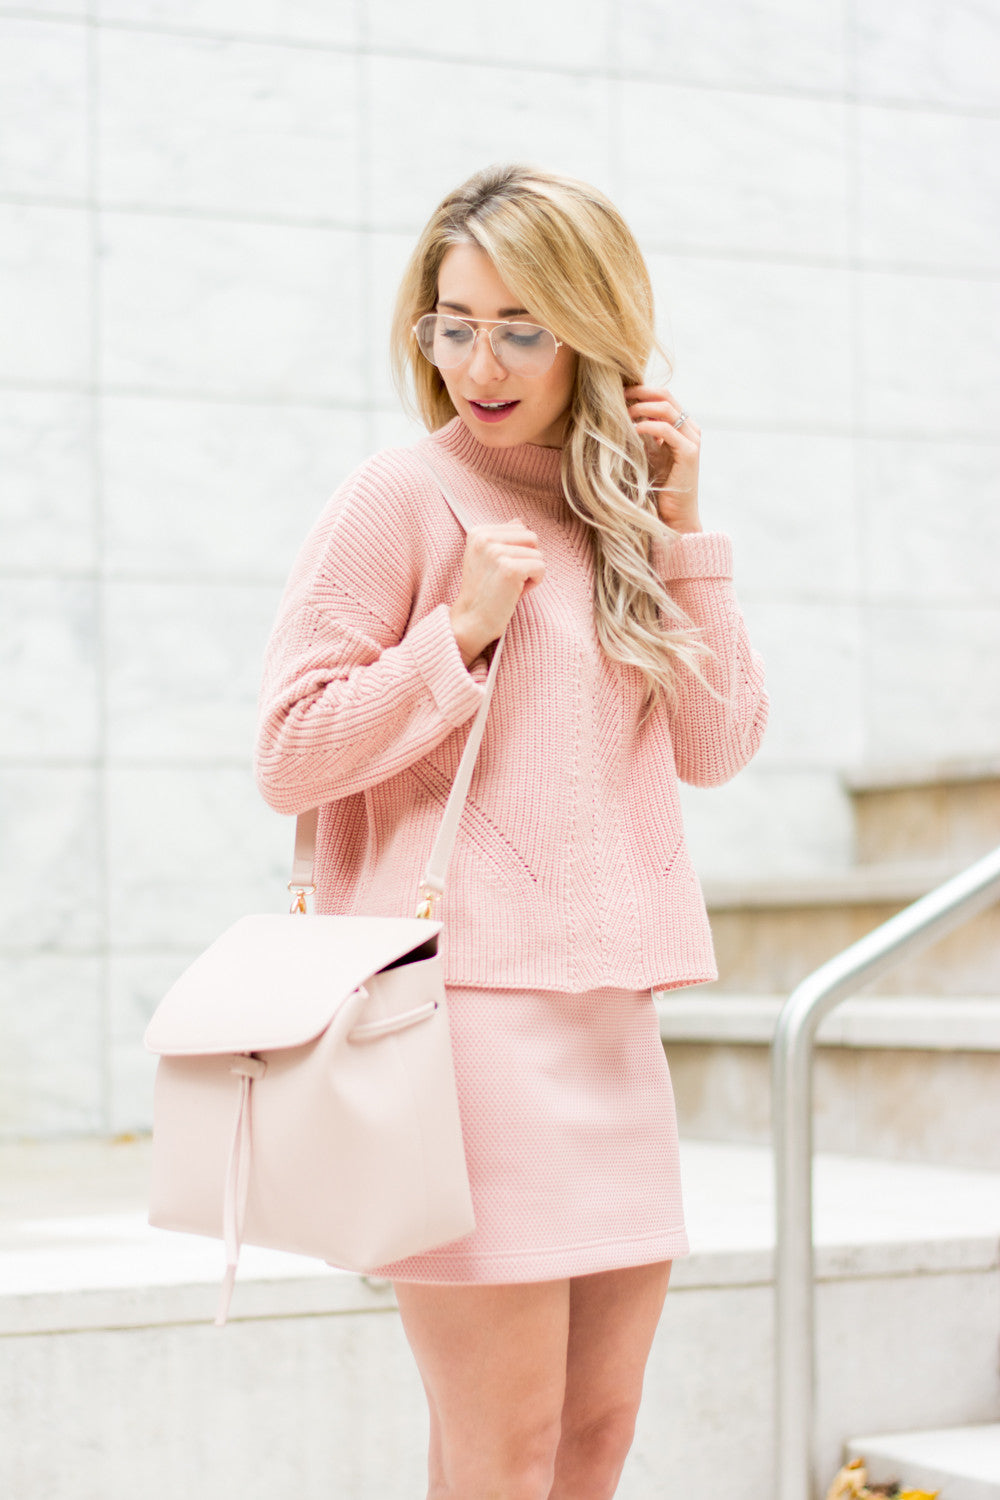 OOTD - All Pink All The Time by @lapetitenoob